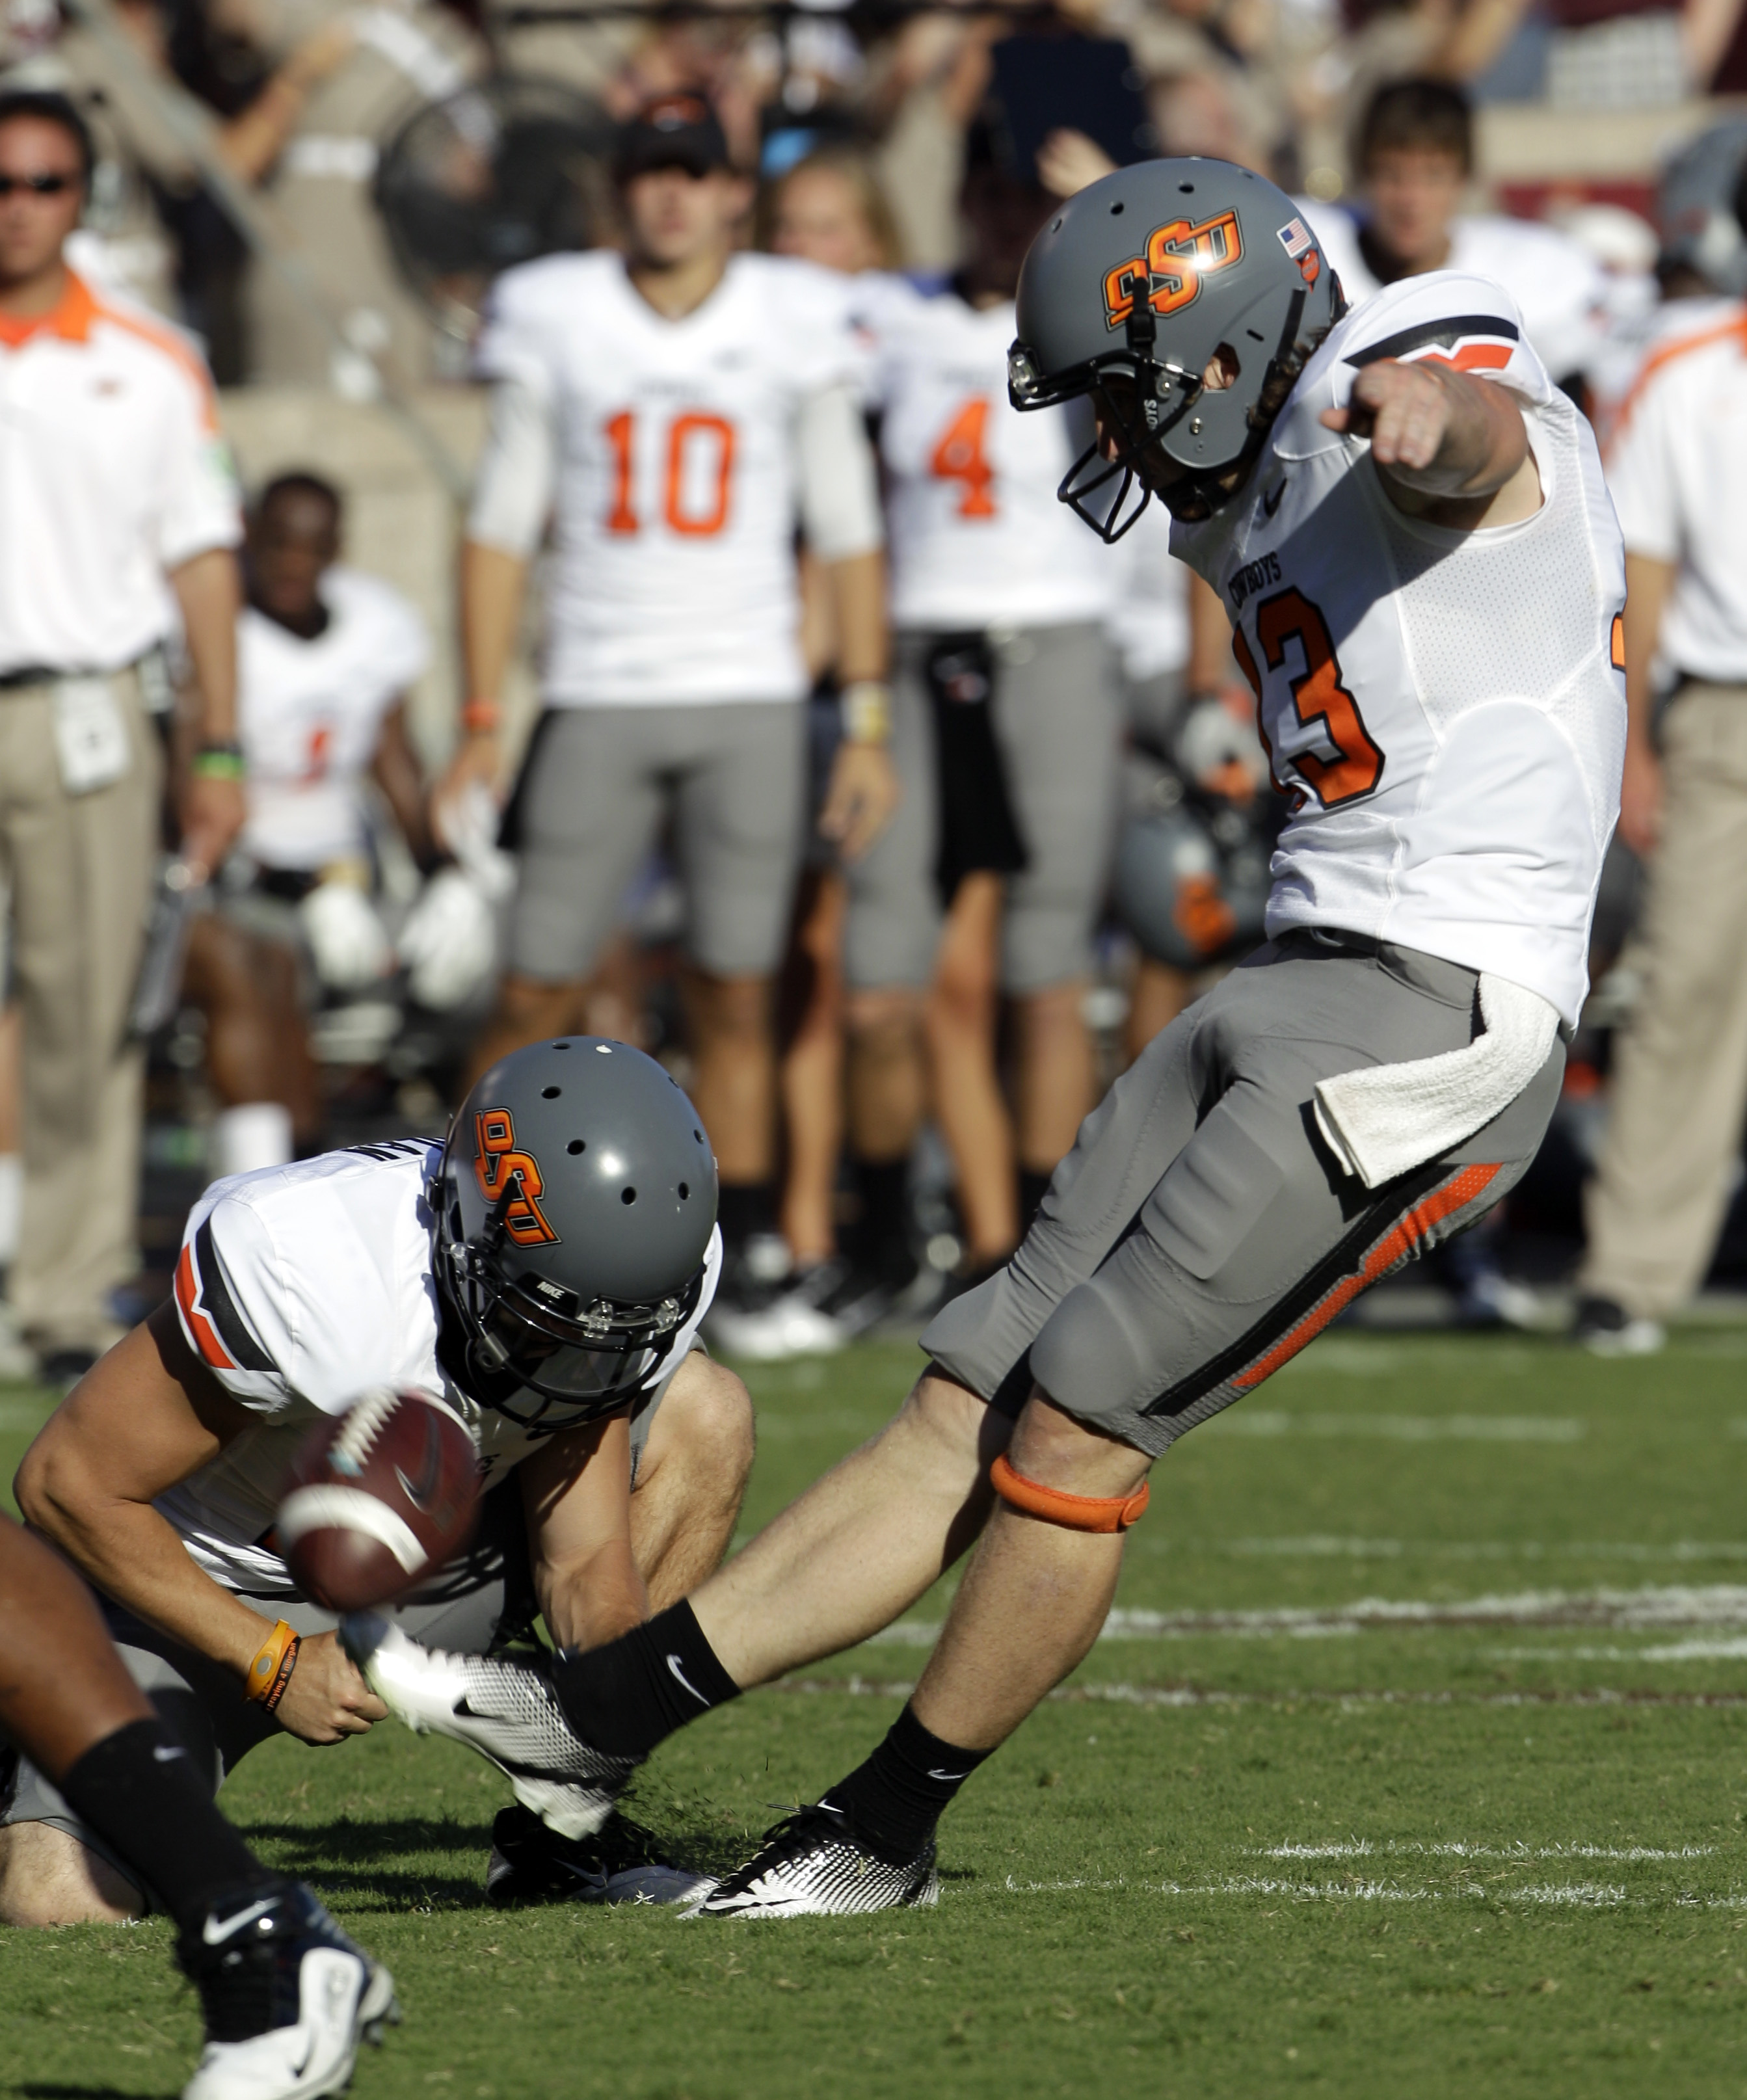 Quinn Sharp has one of the strongest legs in the nation, as a kicker and as a punter. (AP)